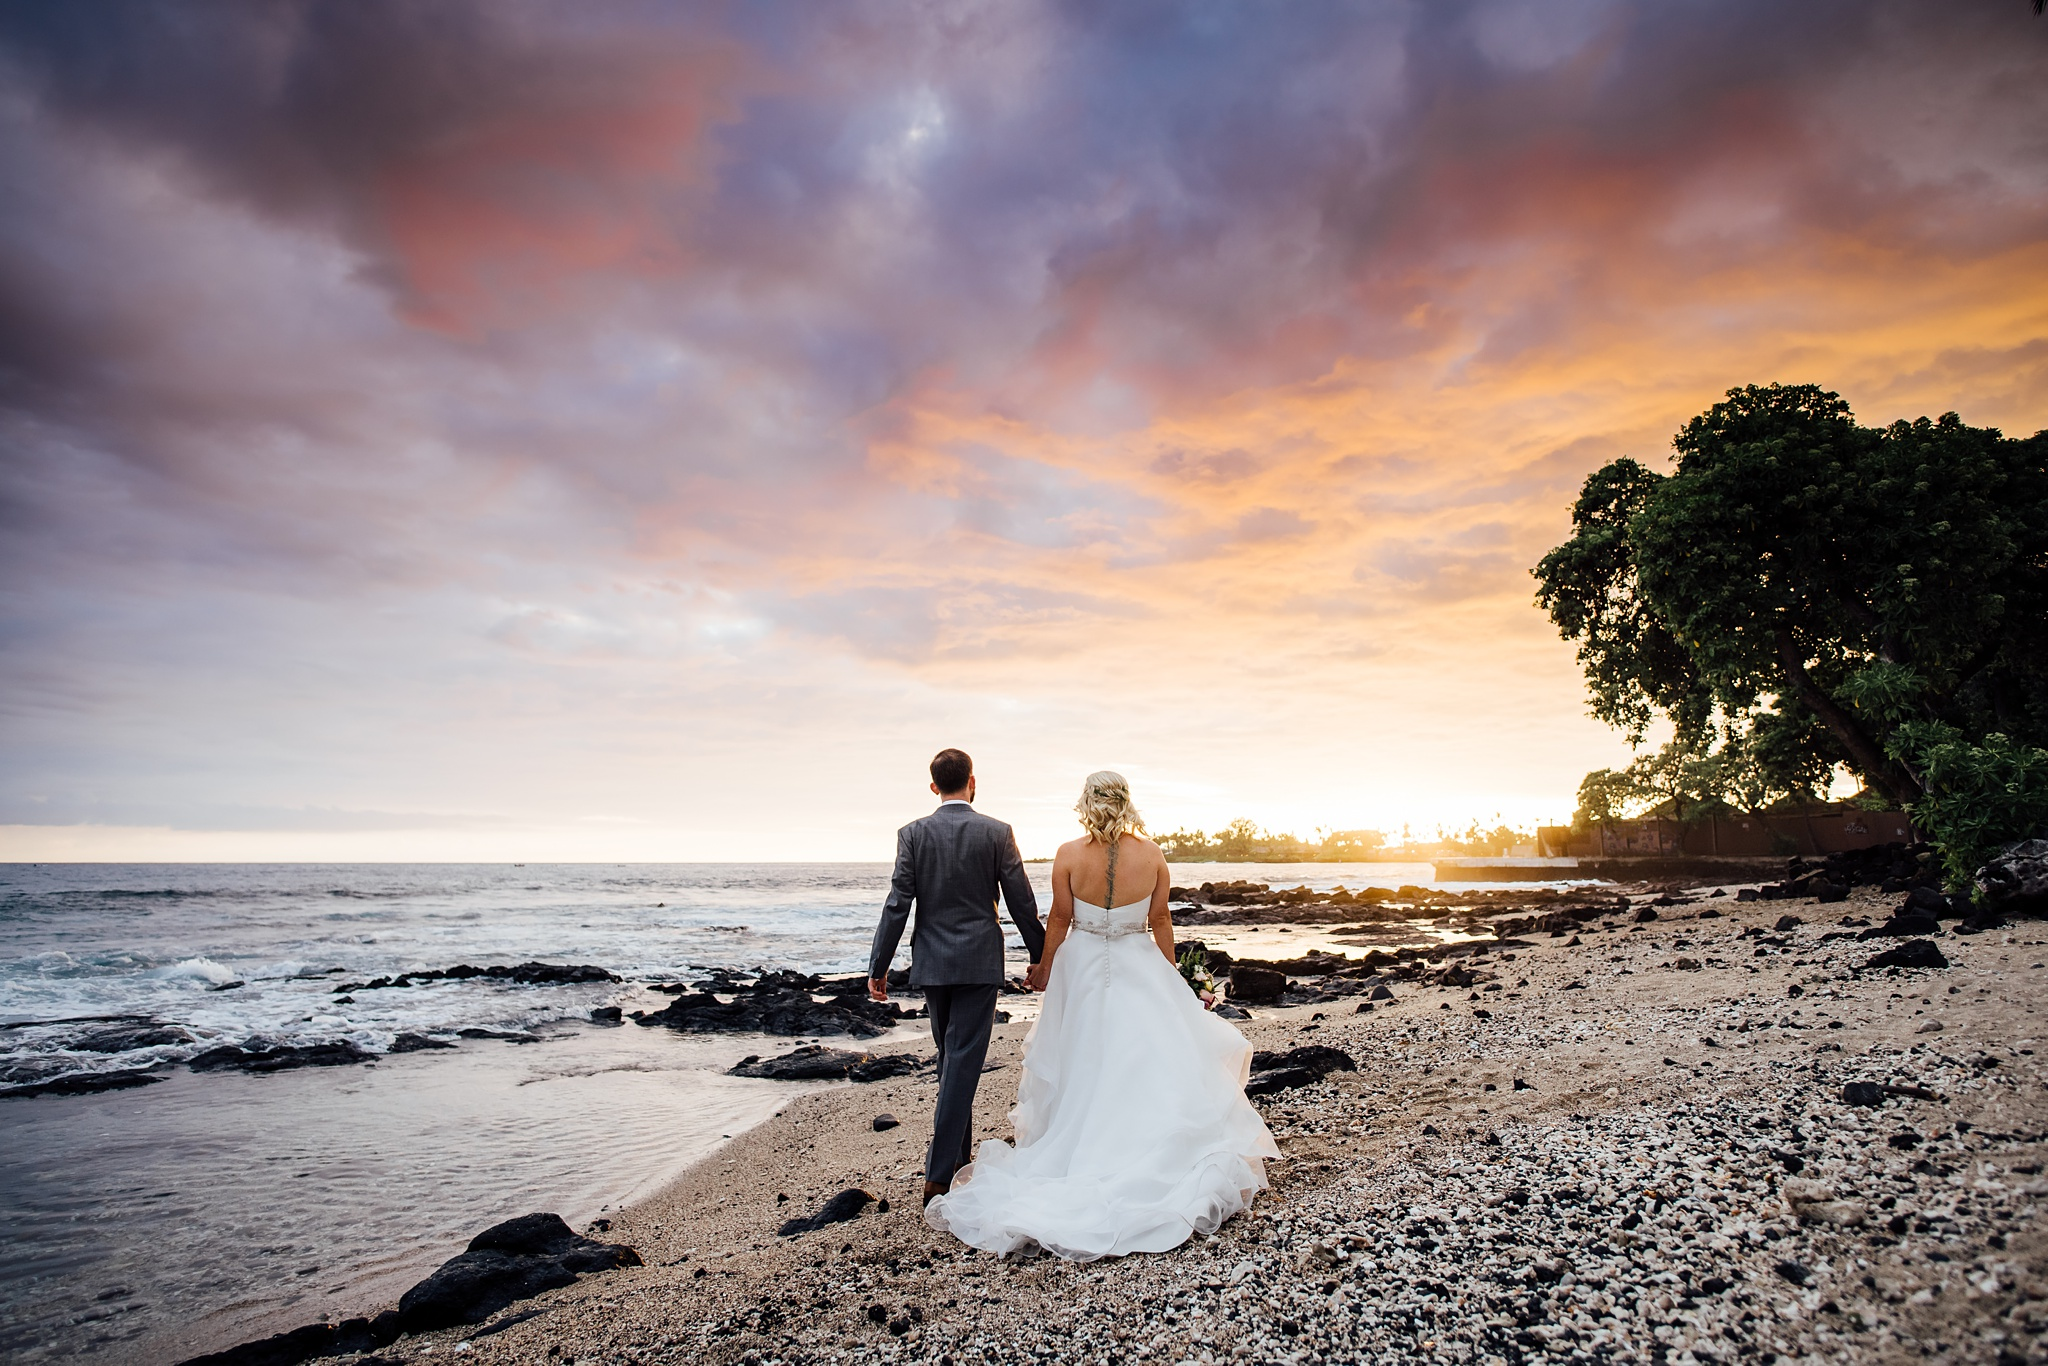 Beautiful sunset wedding in kona